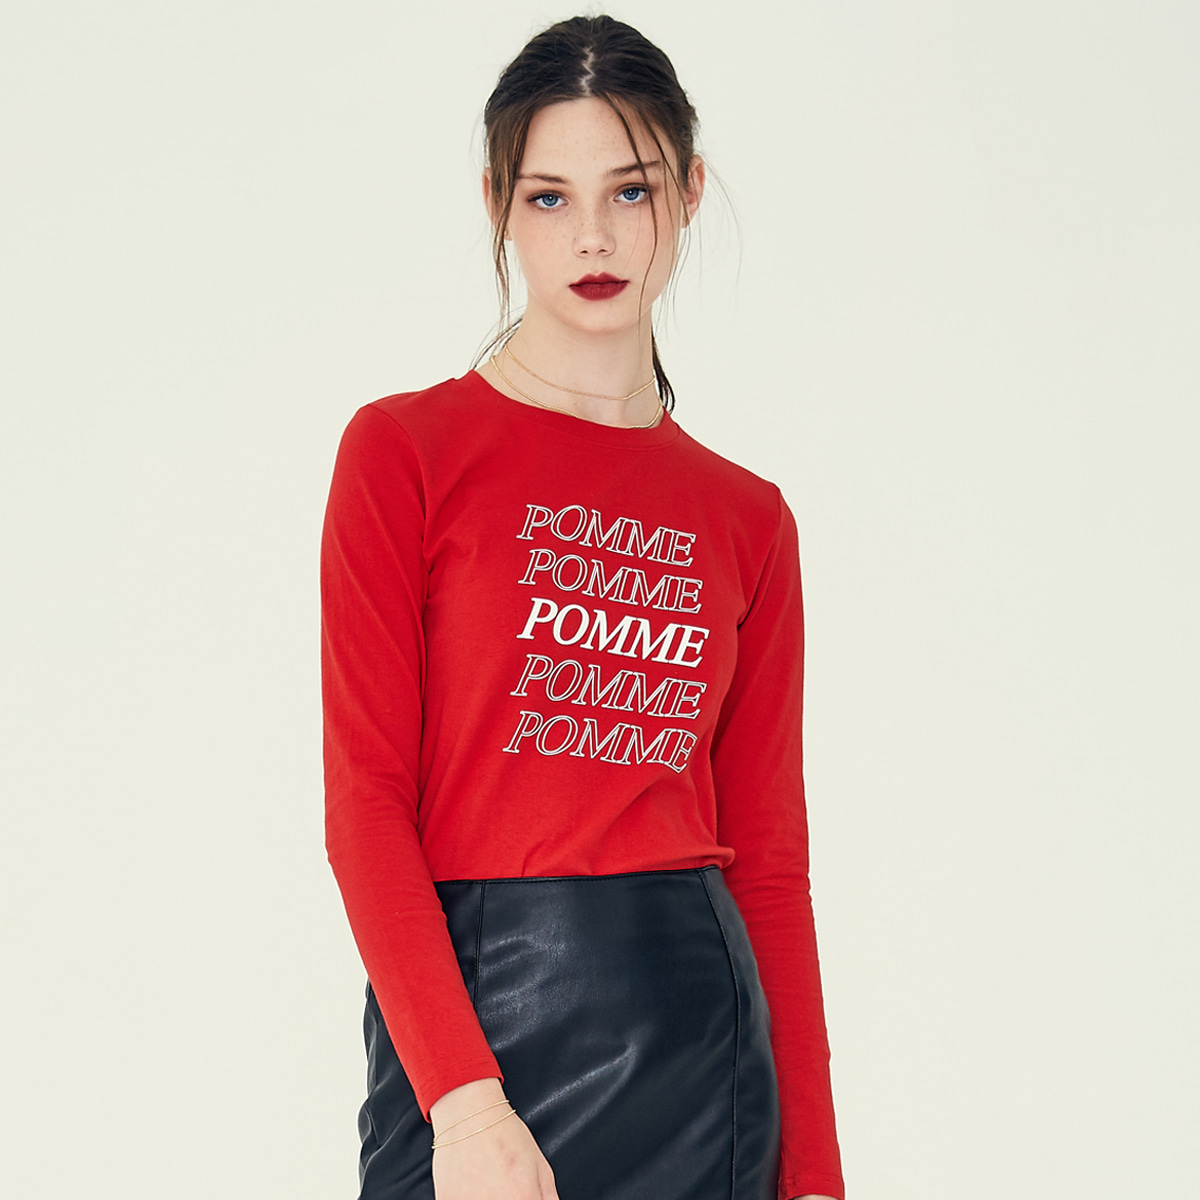 LE POMME T-SHIRT(RED)